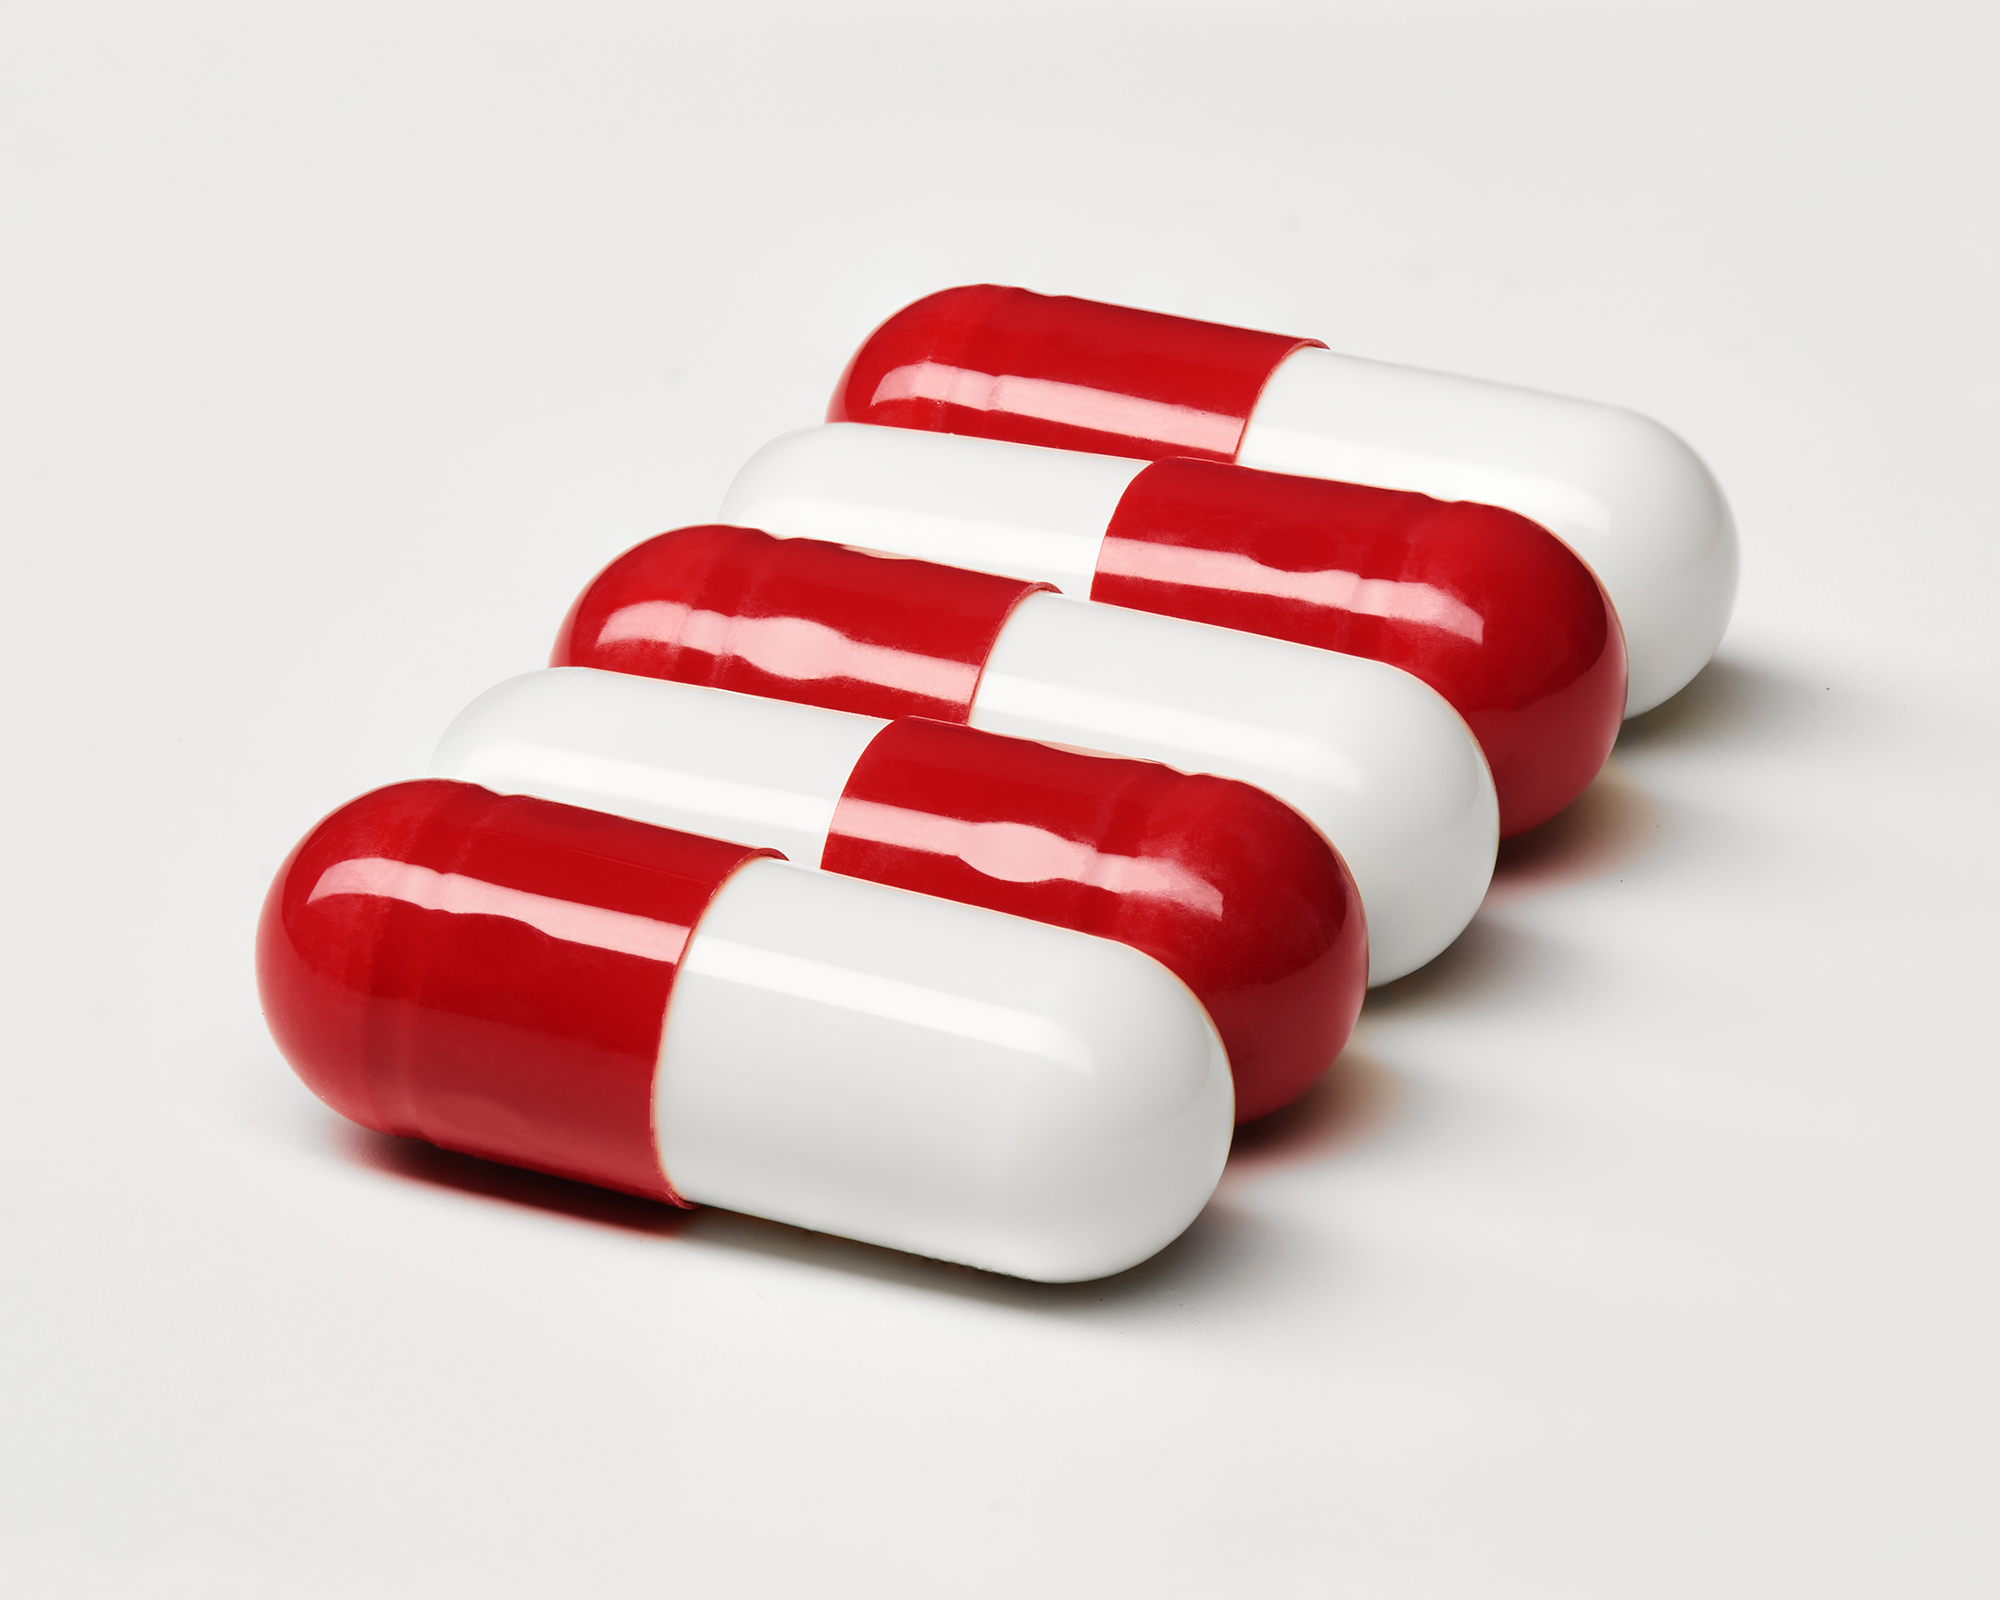 Ian Knaggs Commercial Still Life Photographer - Red & White Pills